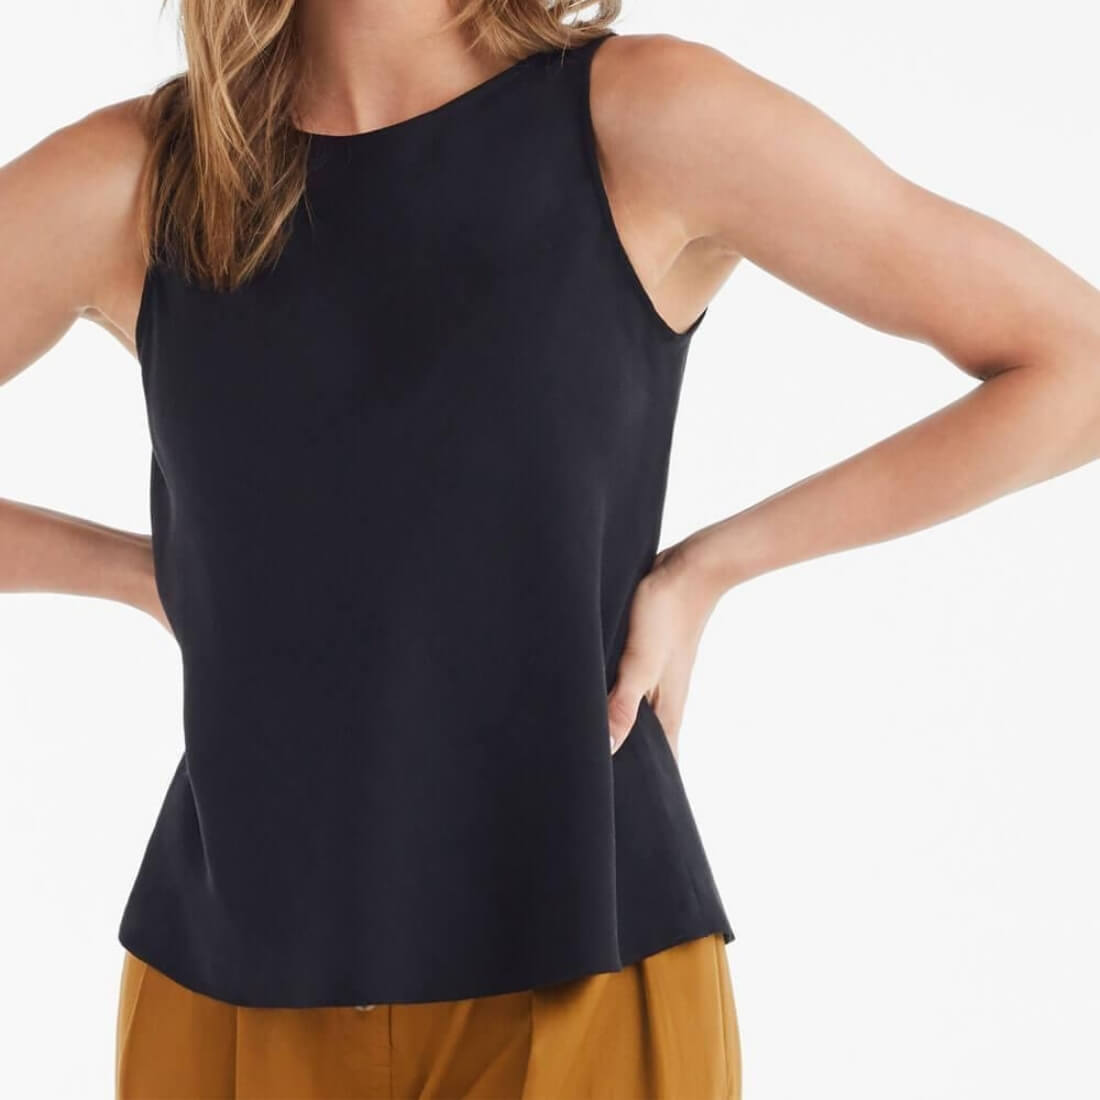 The textured shell top